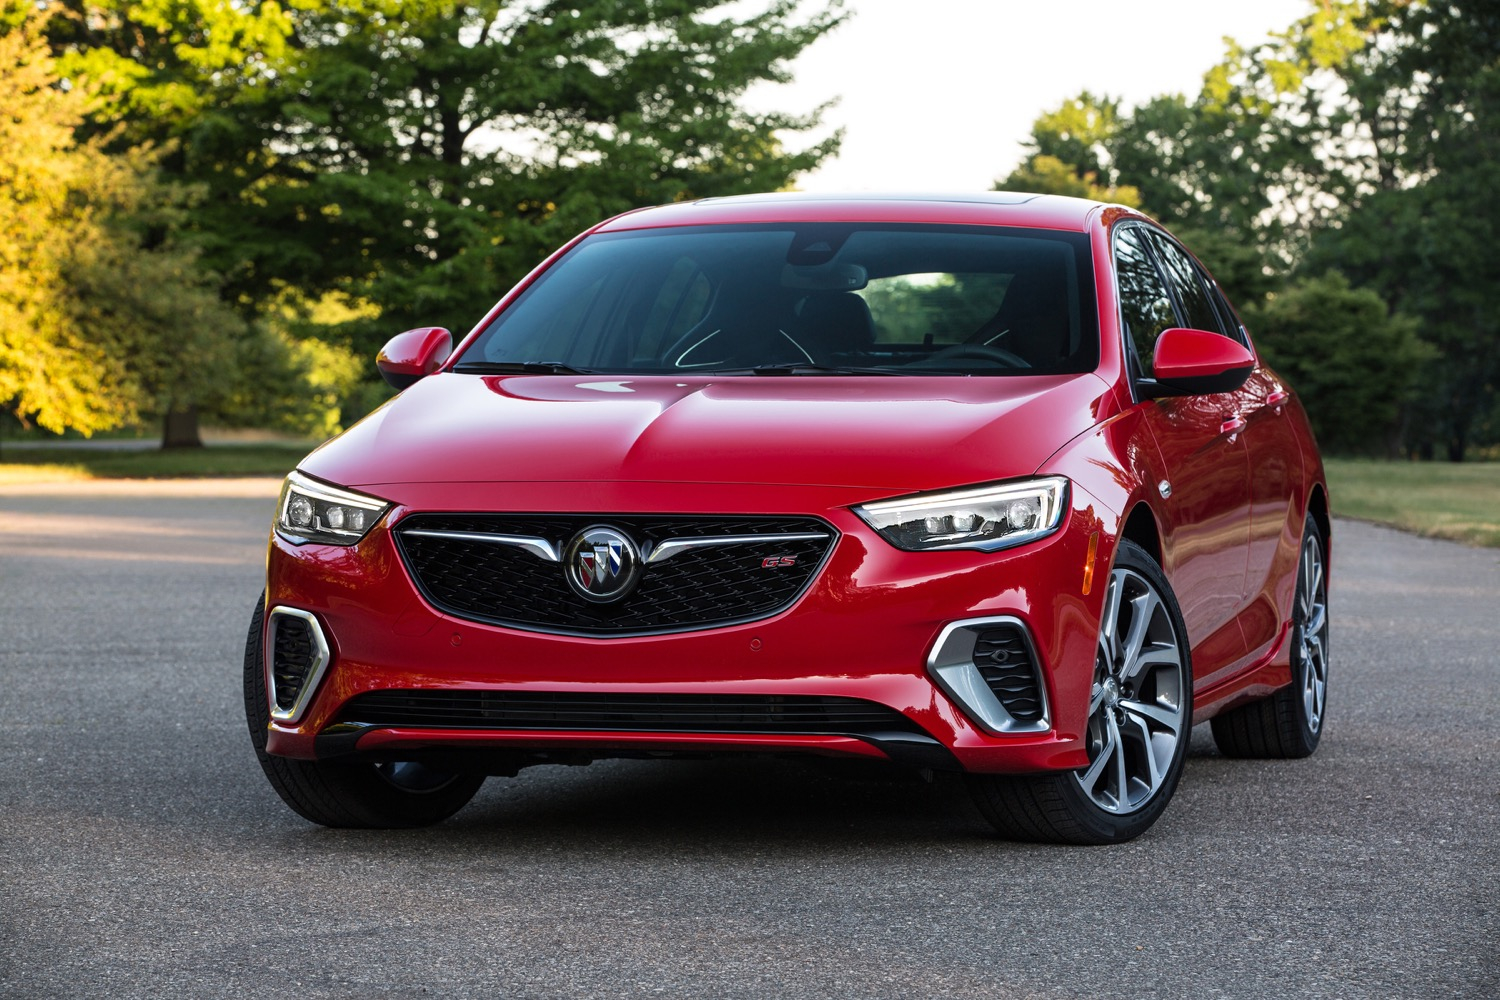 We Have Some Beef With This 2018 Buick Regal Gs Review | Gm 2022 Buick Regal Specs, Price, 0-60